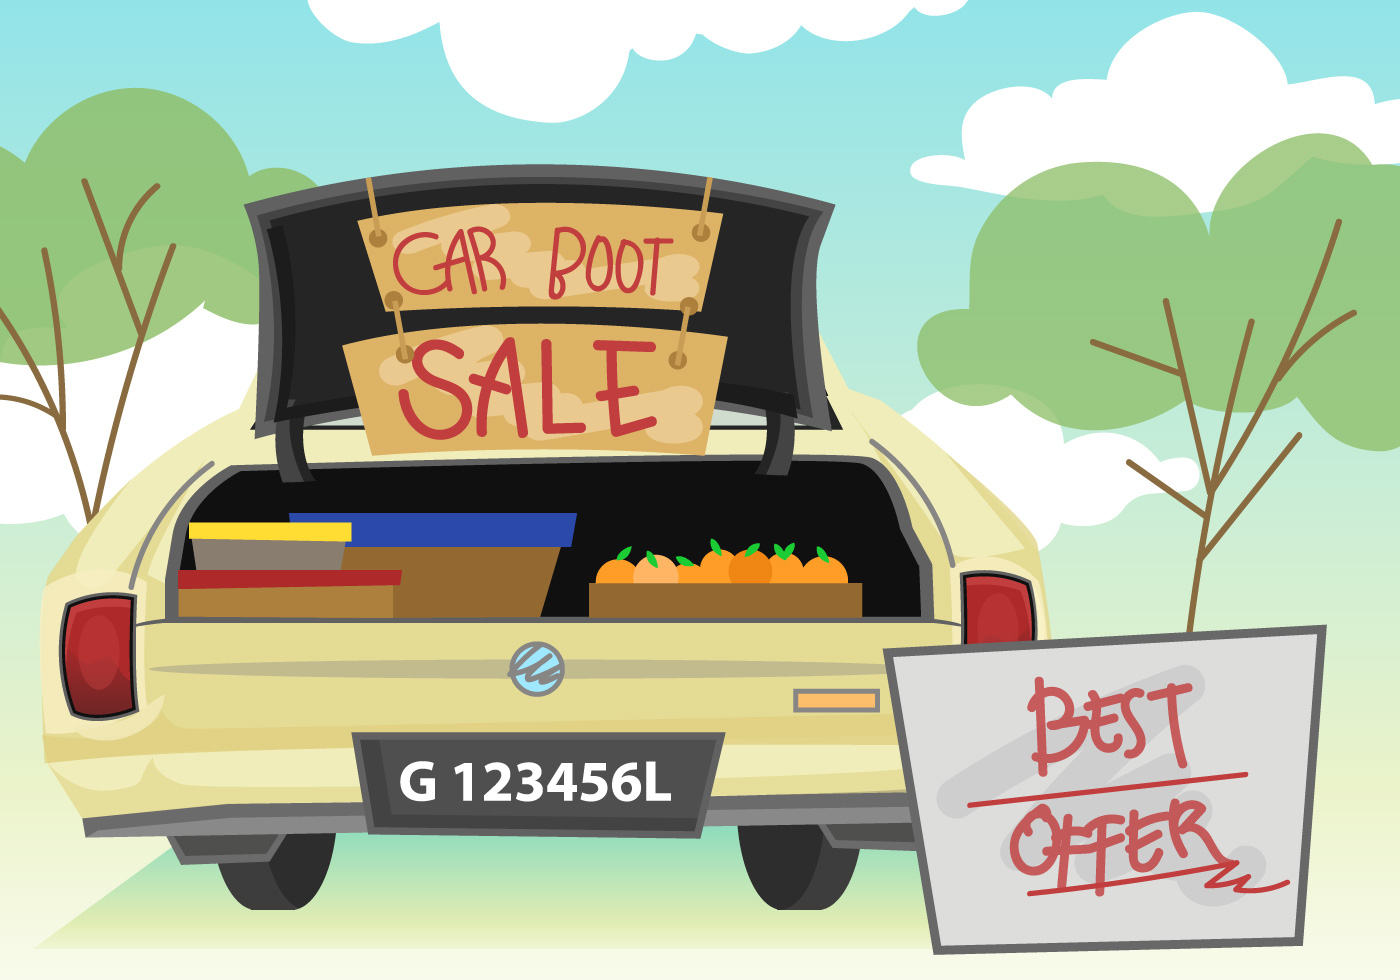 Car sale clipart clipart free stock Car Boot Sale Free Vector Art - (25 Free Downloads) clipart free stock